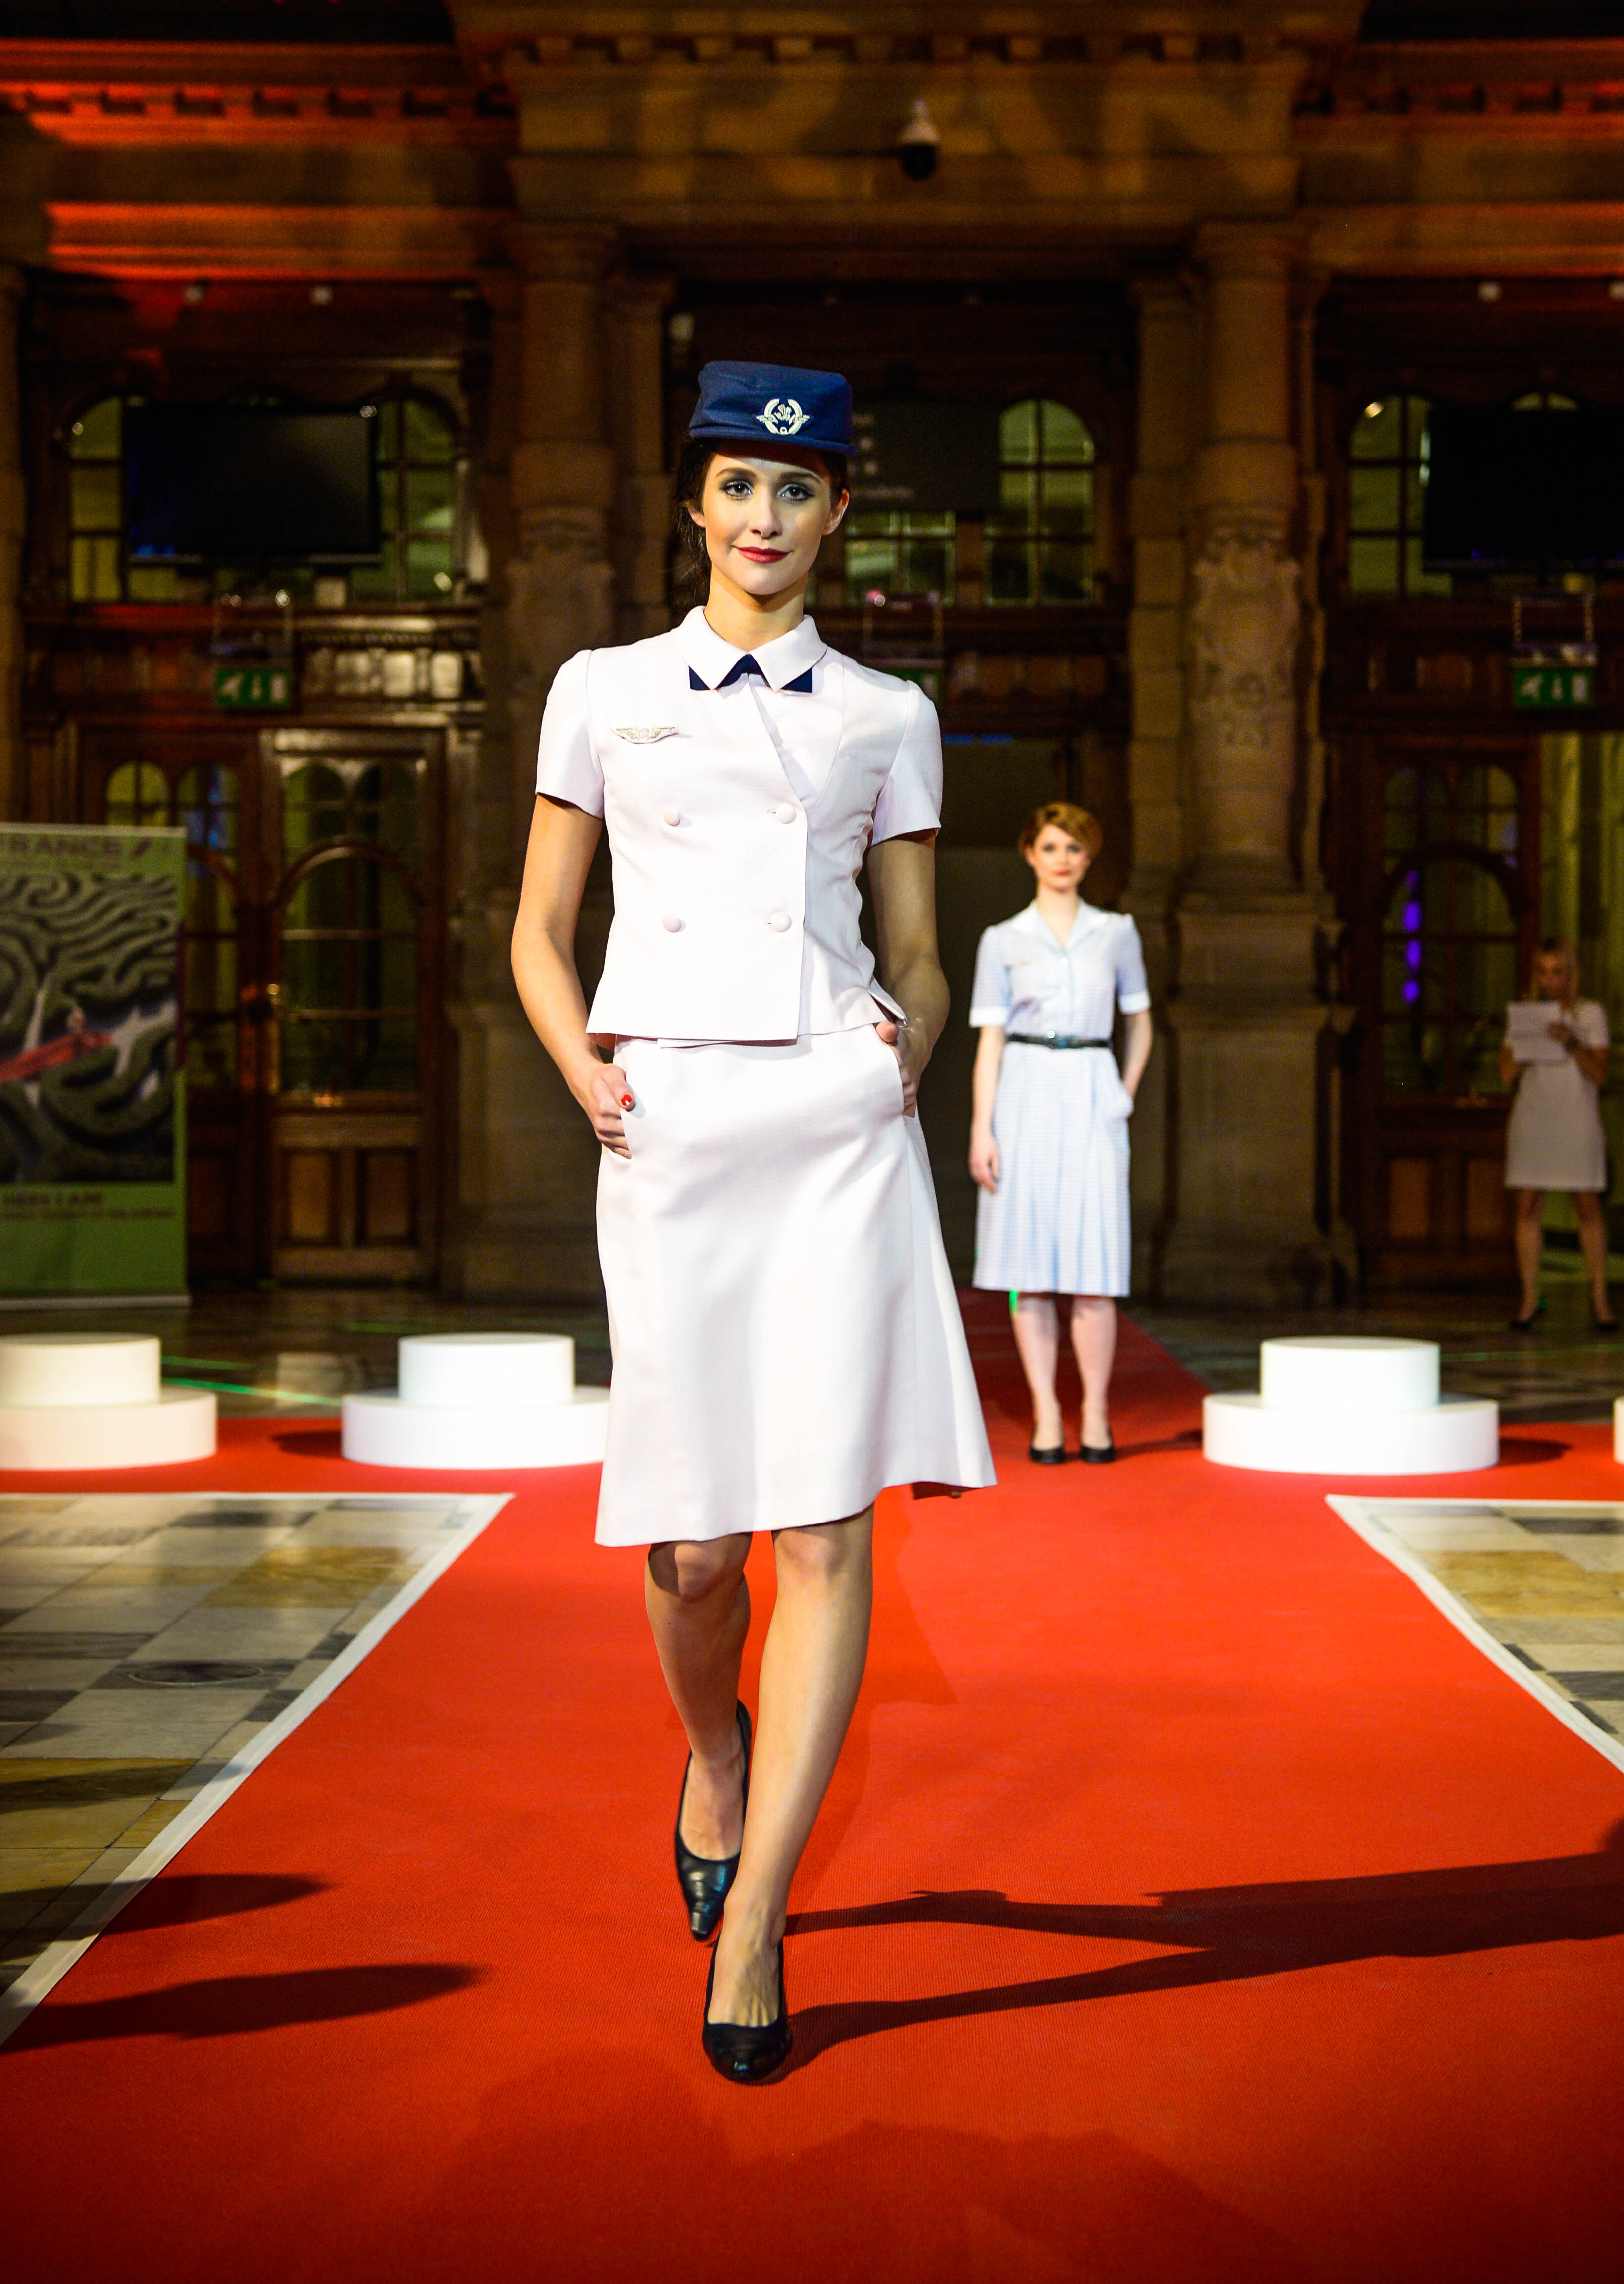 Air France Madame Magazine June July 2013 Ioanna Ntenti: Air France Uniforms Have Delighted For Decades